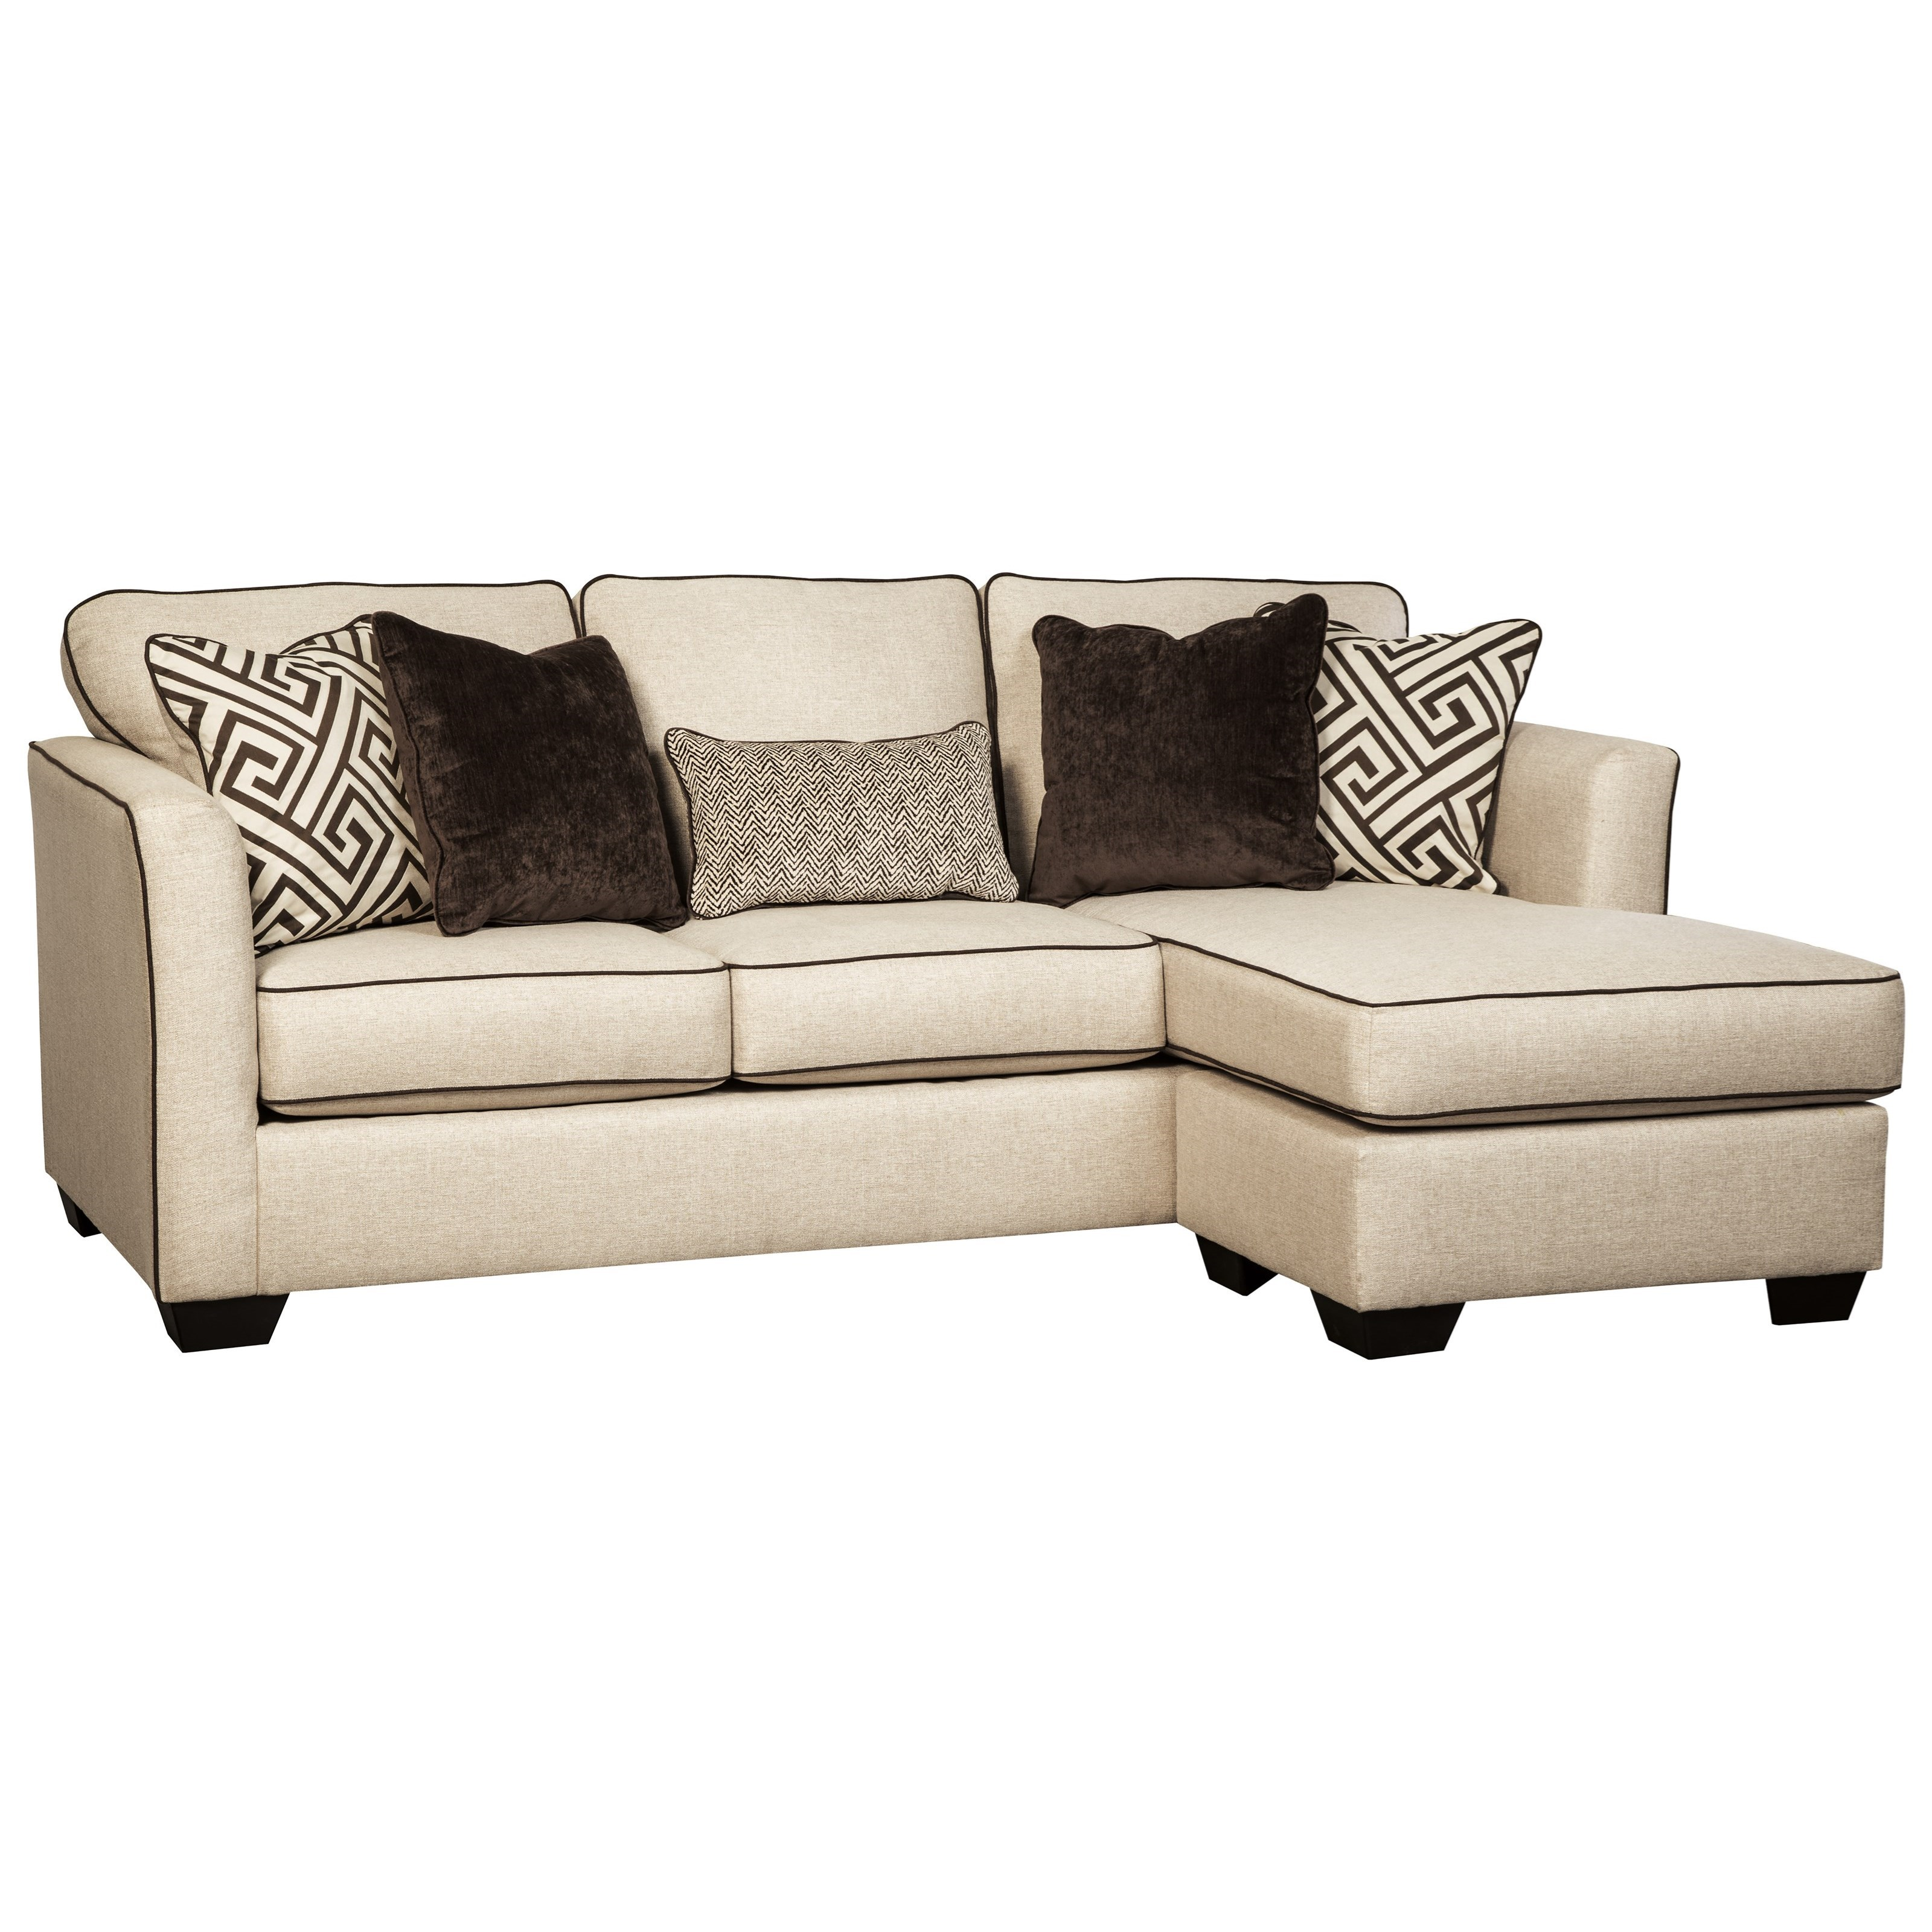 Grand Chaise Slipcover Benchcraft By Ashley Carlinworth Queen Sofa Chaise Sleeper Item Benchcraft By Ashley Carlinworth Queen Sofa Chaise Couch Chaise Lear Couch houzz-03 Couch With Chaise